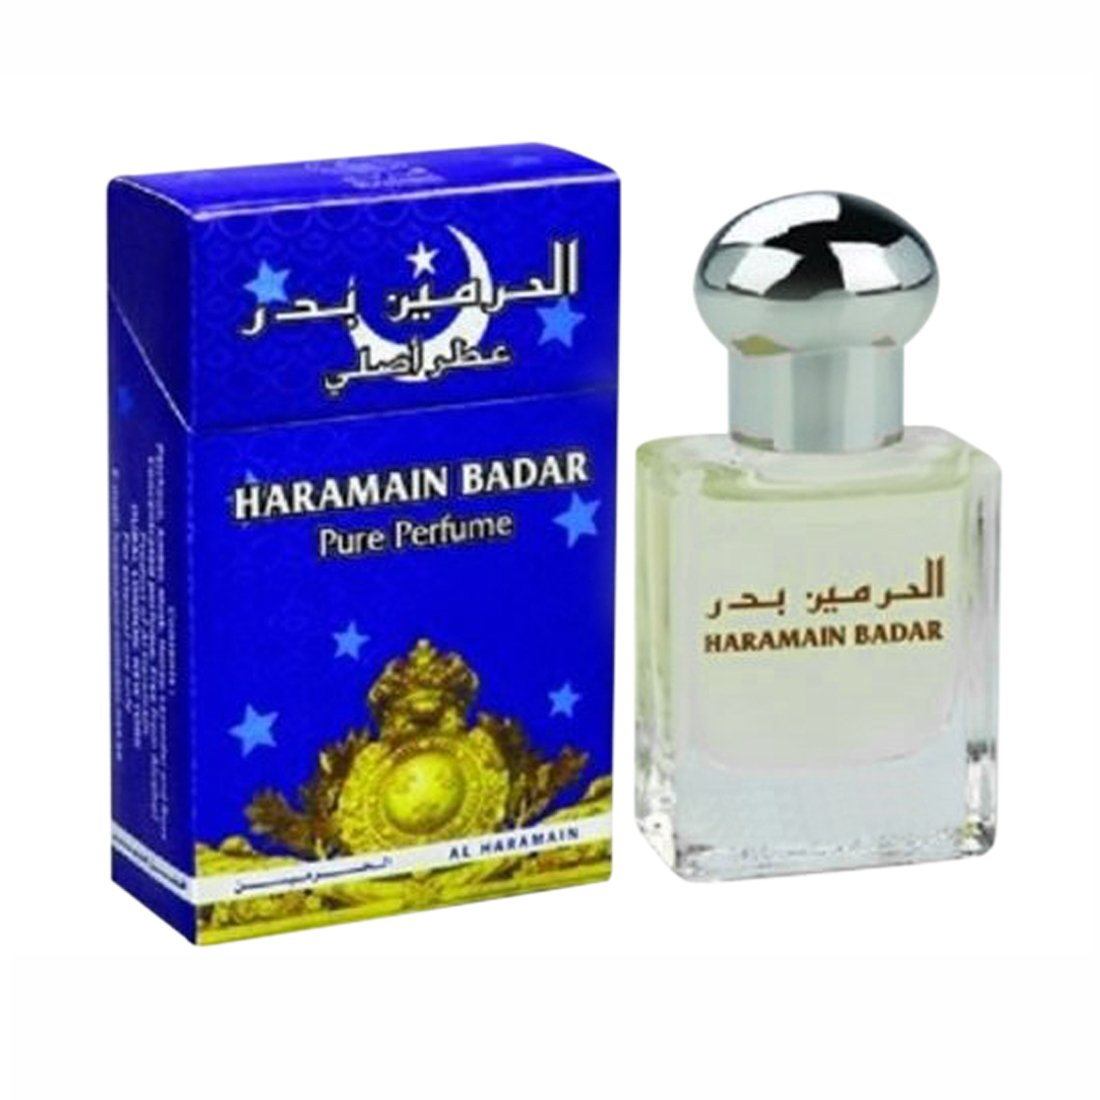 Al Haramain Badar Roll on Attar - 15ml